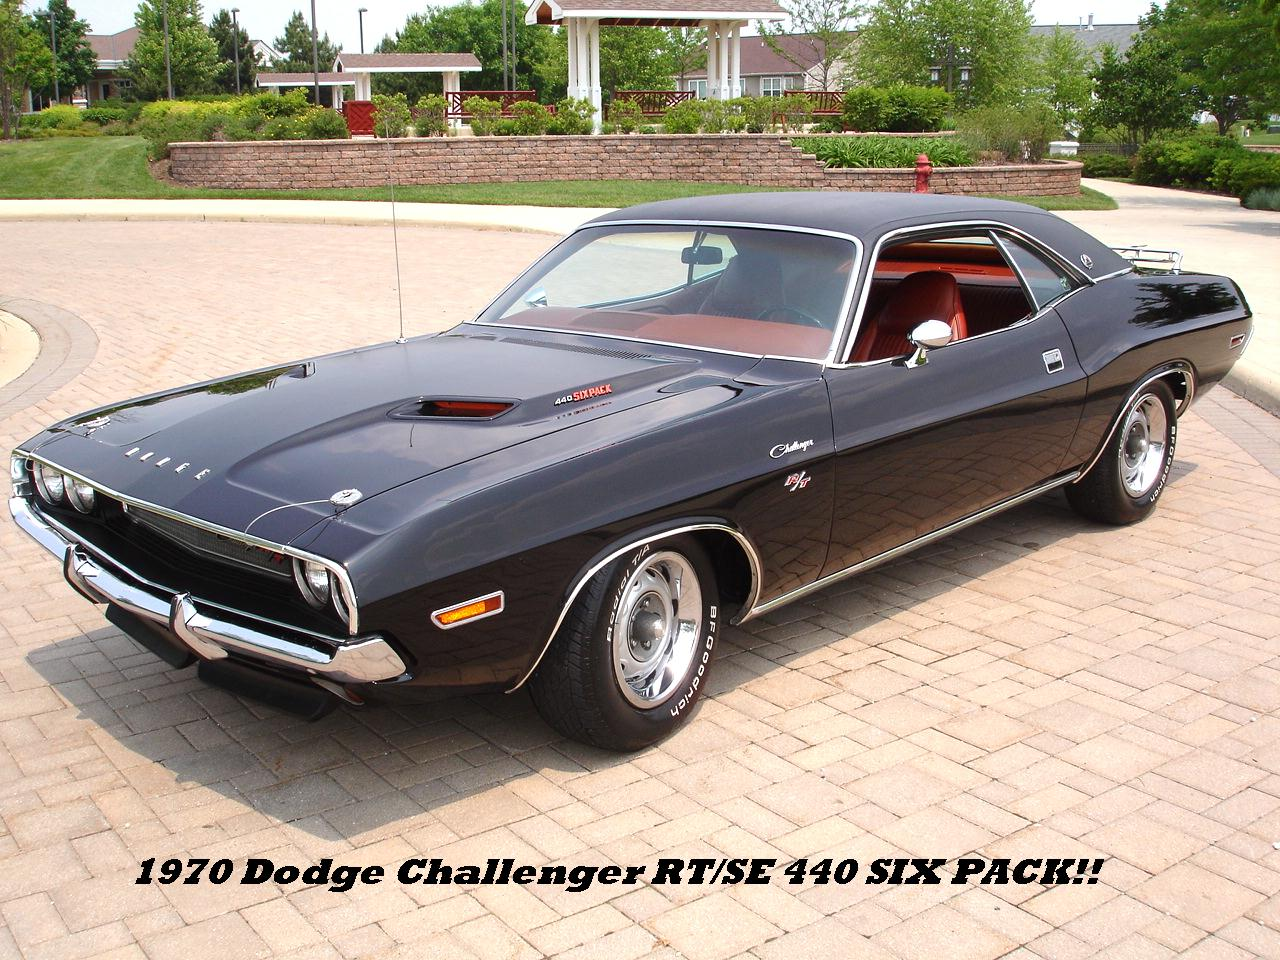 /1970-dodge-challenger-rt-se-440-six-pack